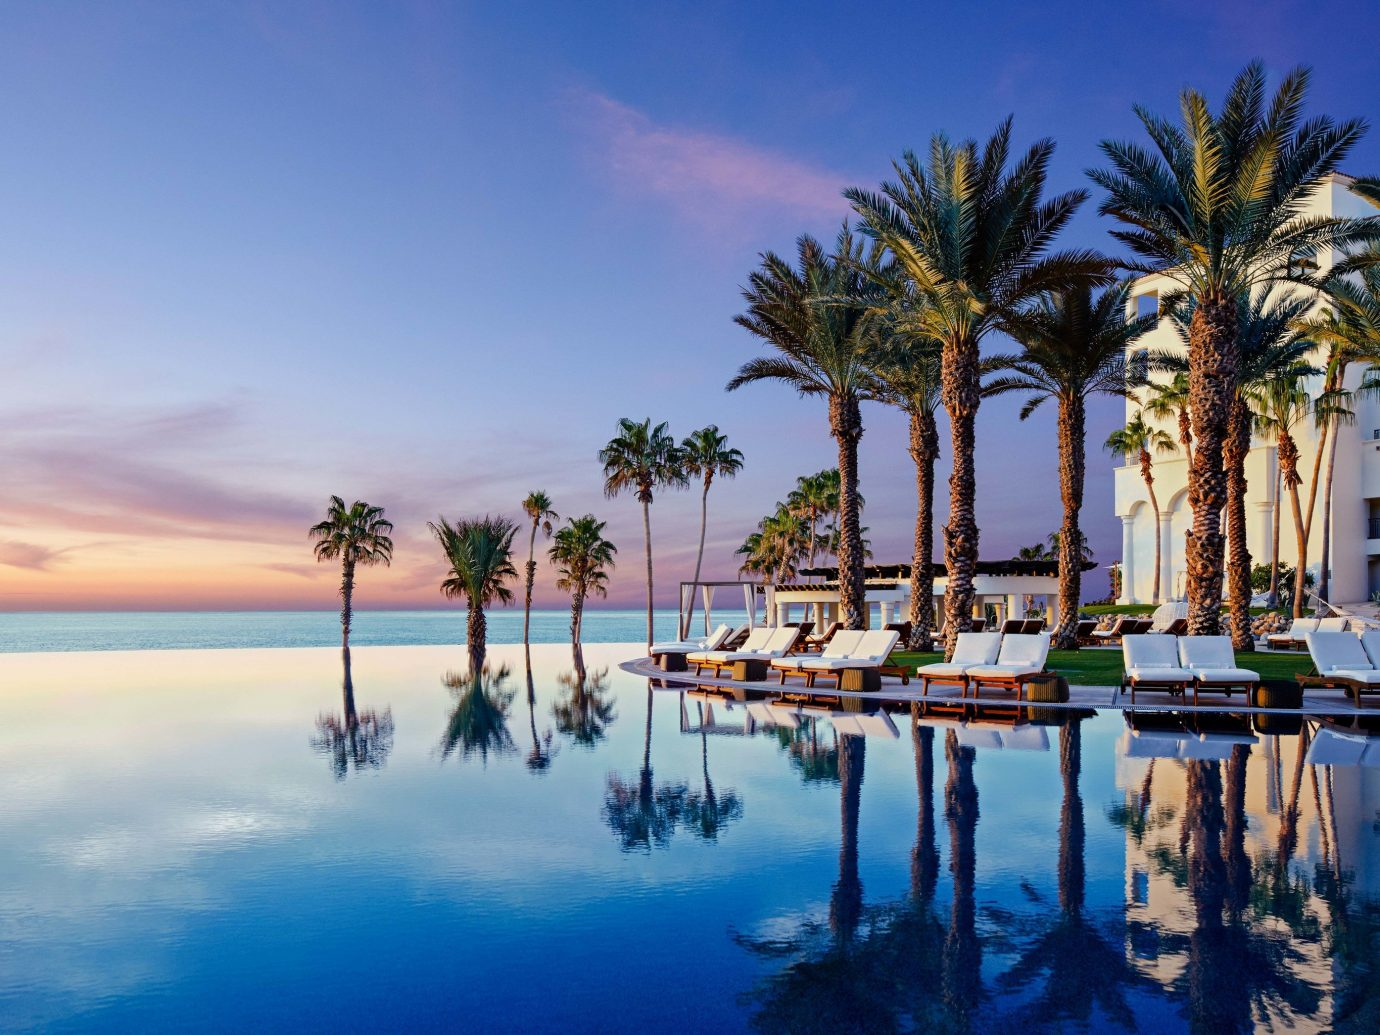 Budget Hotels sky outdoor water vacation Resort palm arecales Sea Beach estate Lagoon evening bay reflection swimming pool palm family dusk shore lined